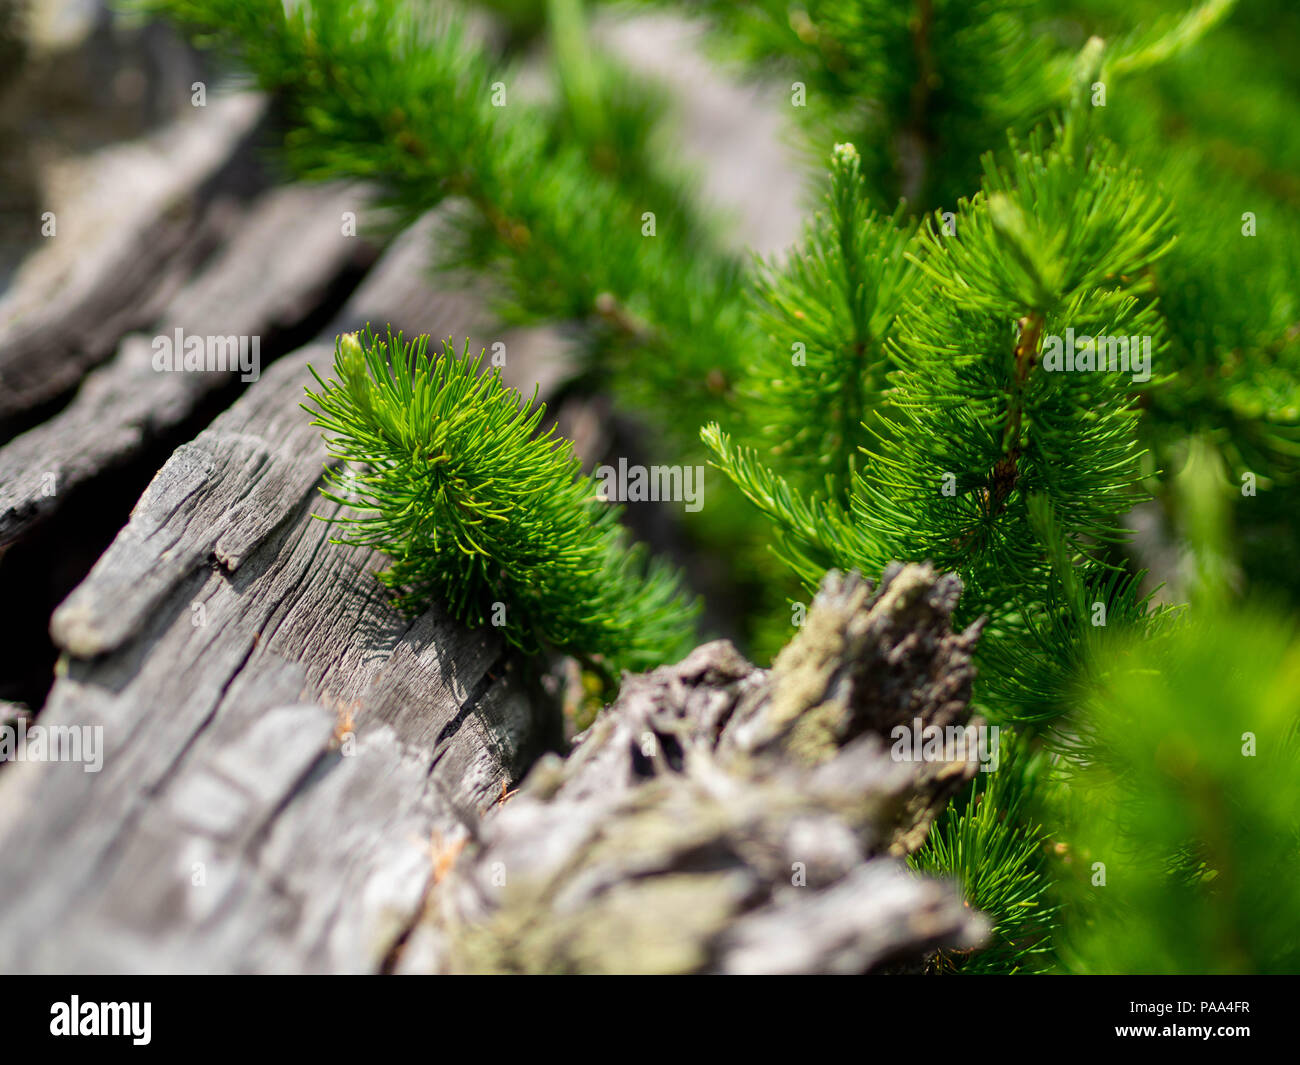 Juicy needles of branches of a coniferous tree, of an ancient tree lying on the ground in the Ural forest, Russia - Stock Image